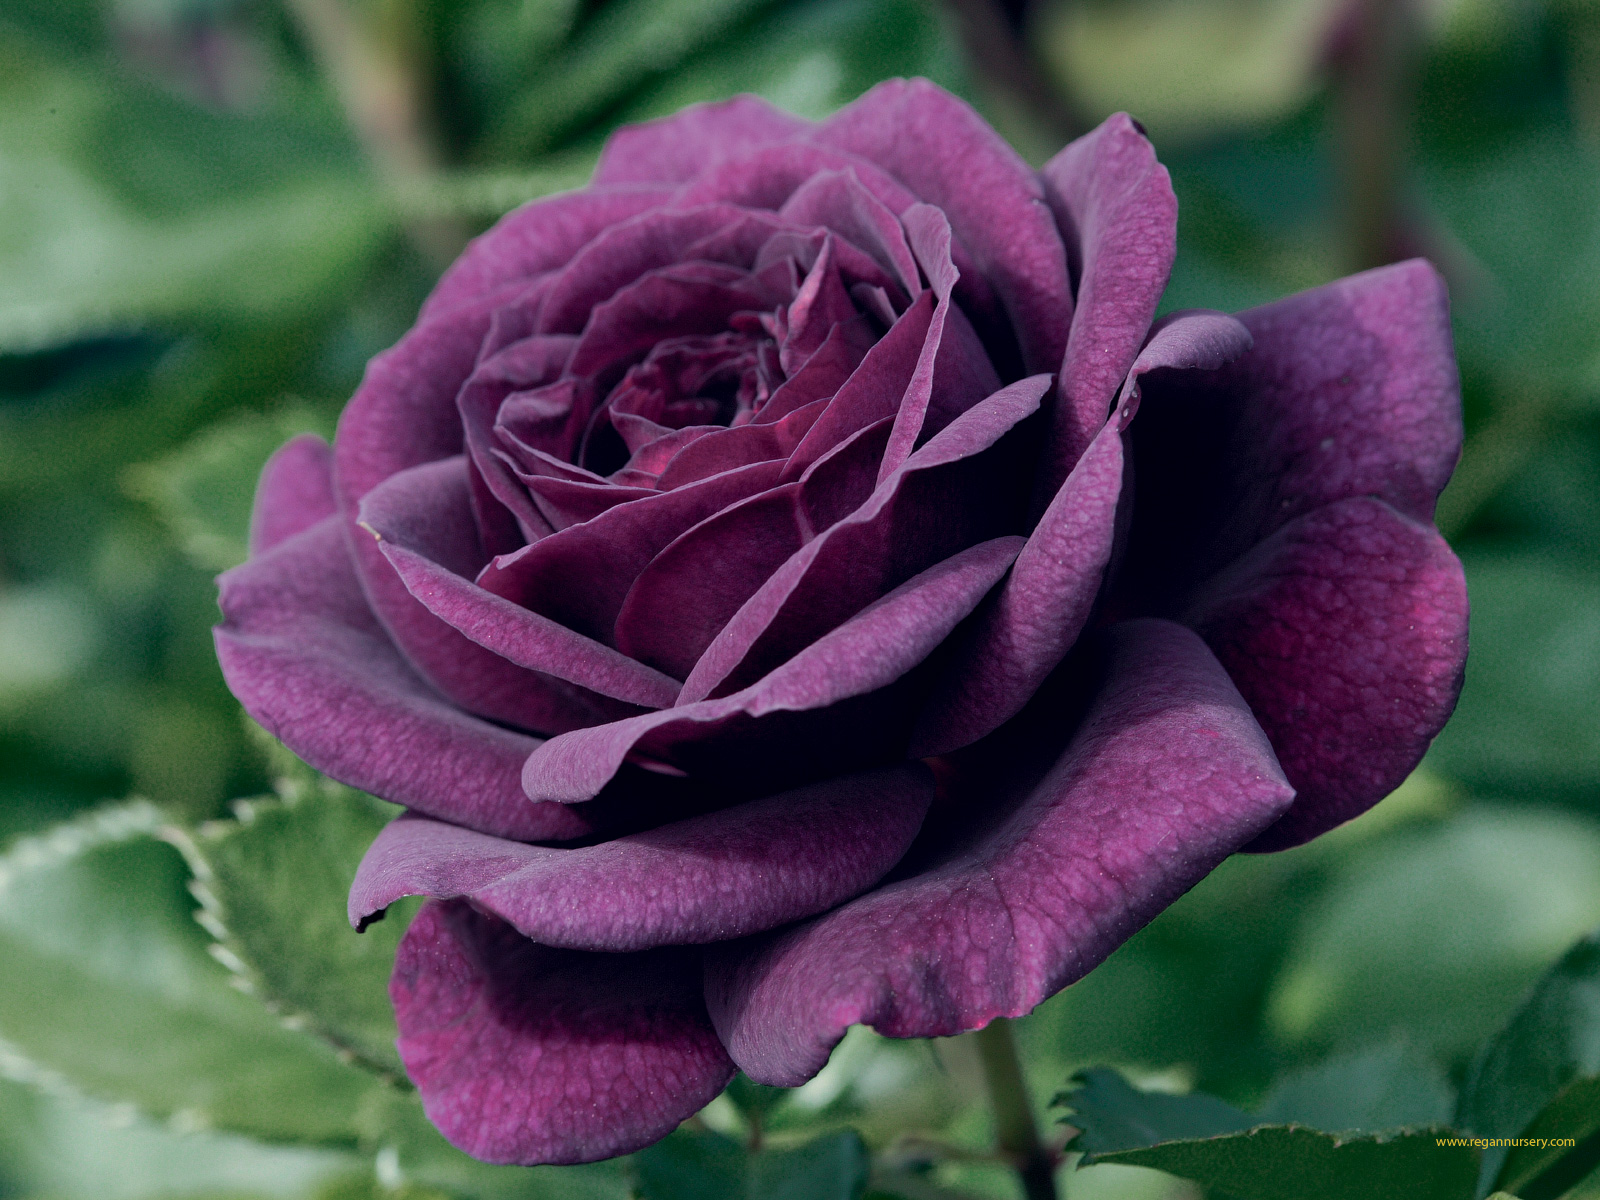 Canada floral delivery blog the varying emotions of a rose for Do black roses really exist